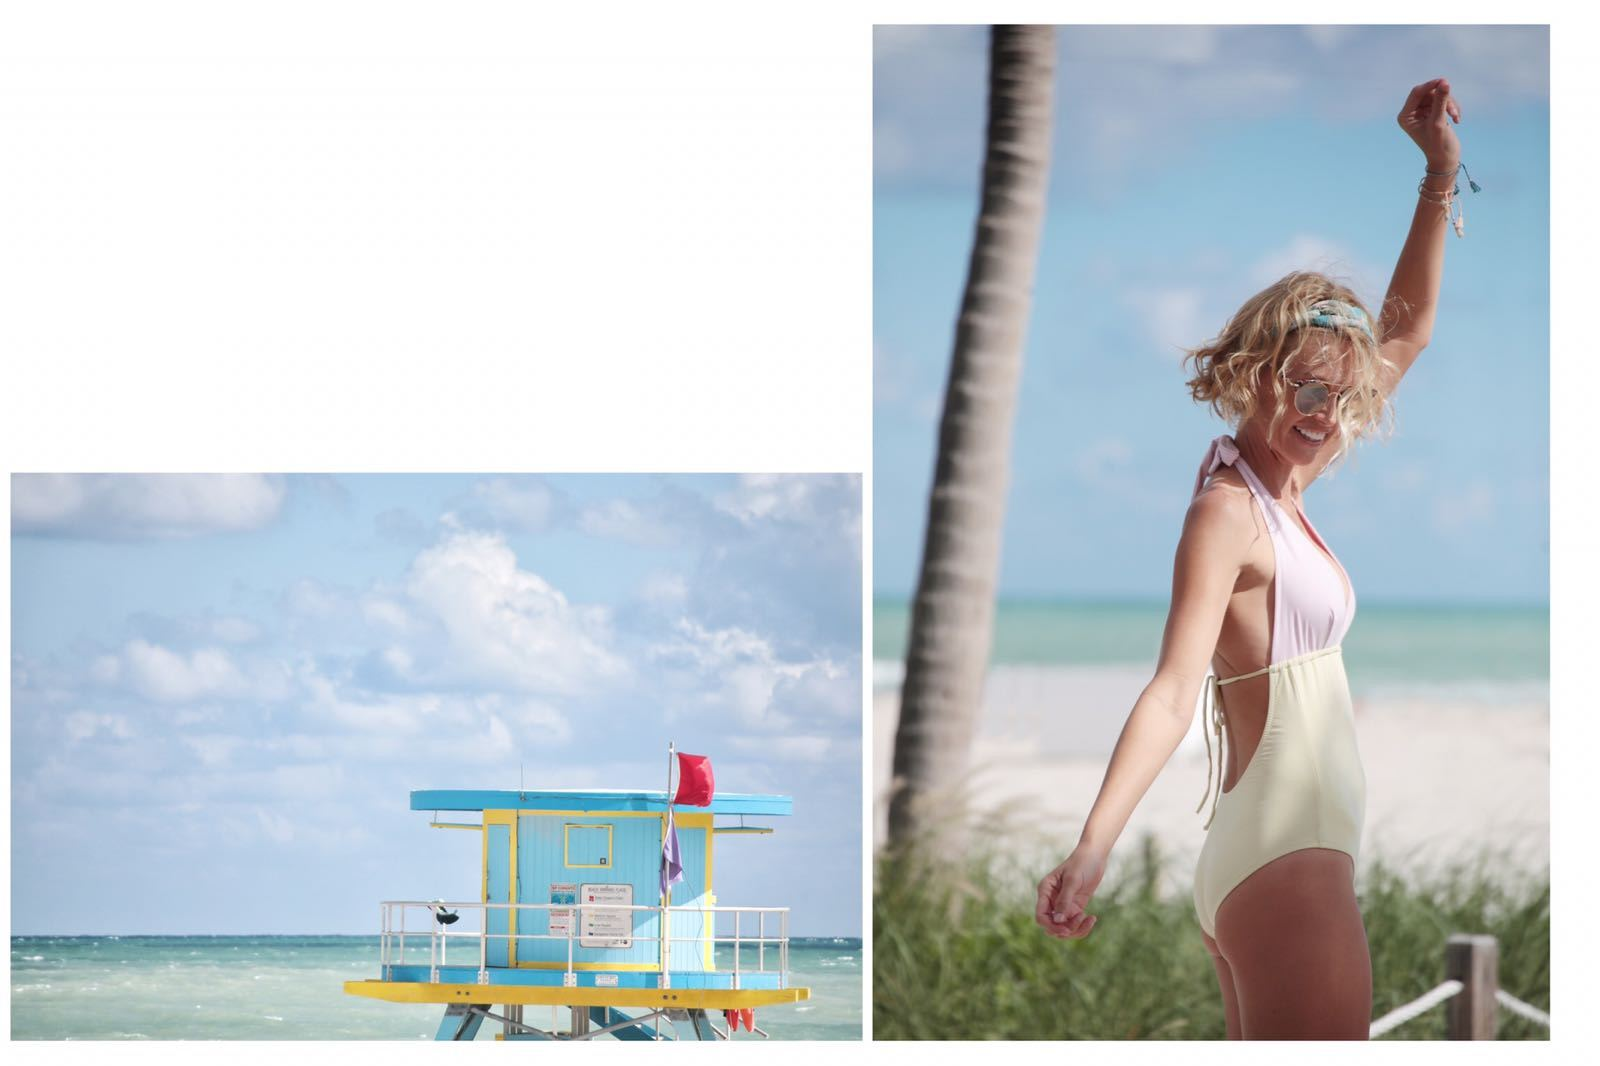 CAMPAIGN BERKLEY MIAMI / PHOTOGRAPHER NANDO ESTEVA